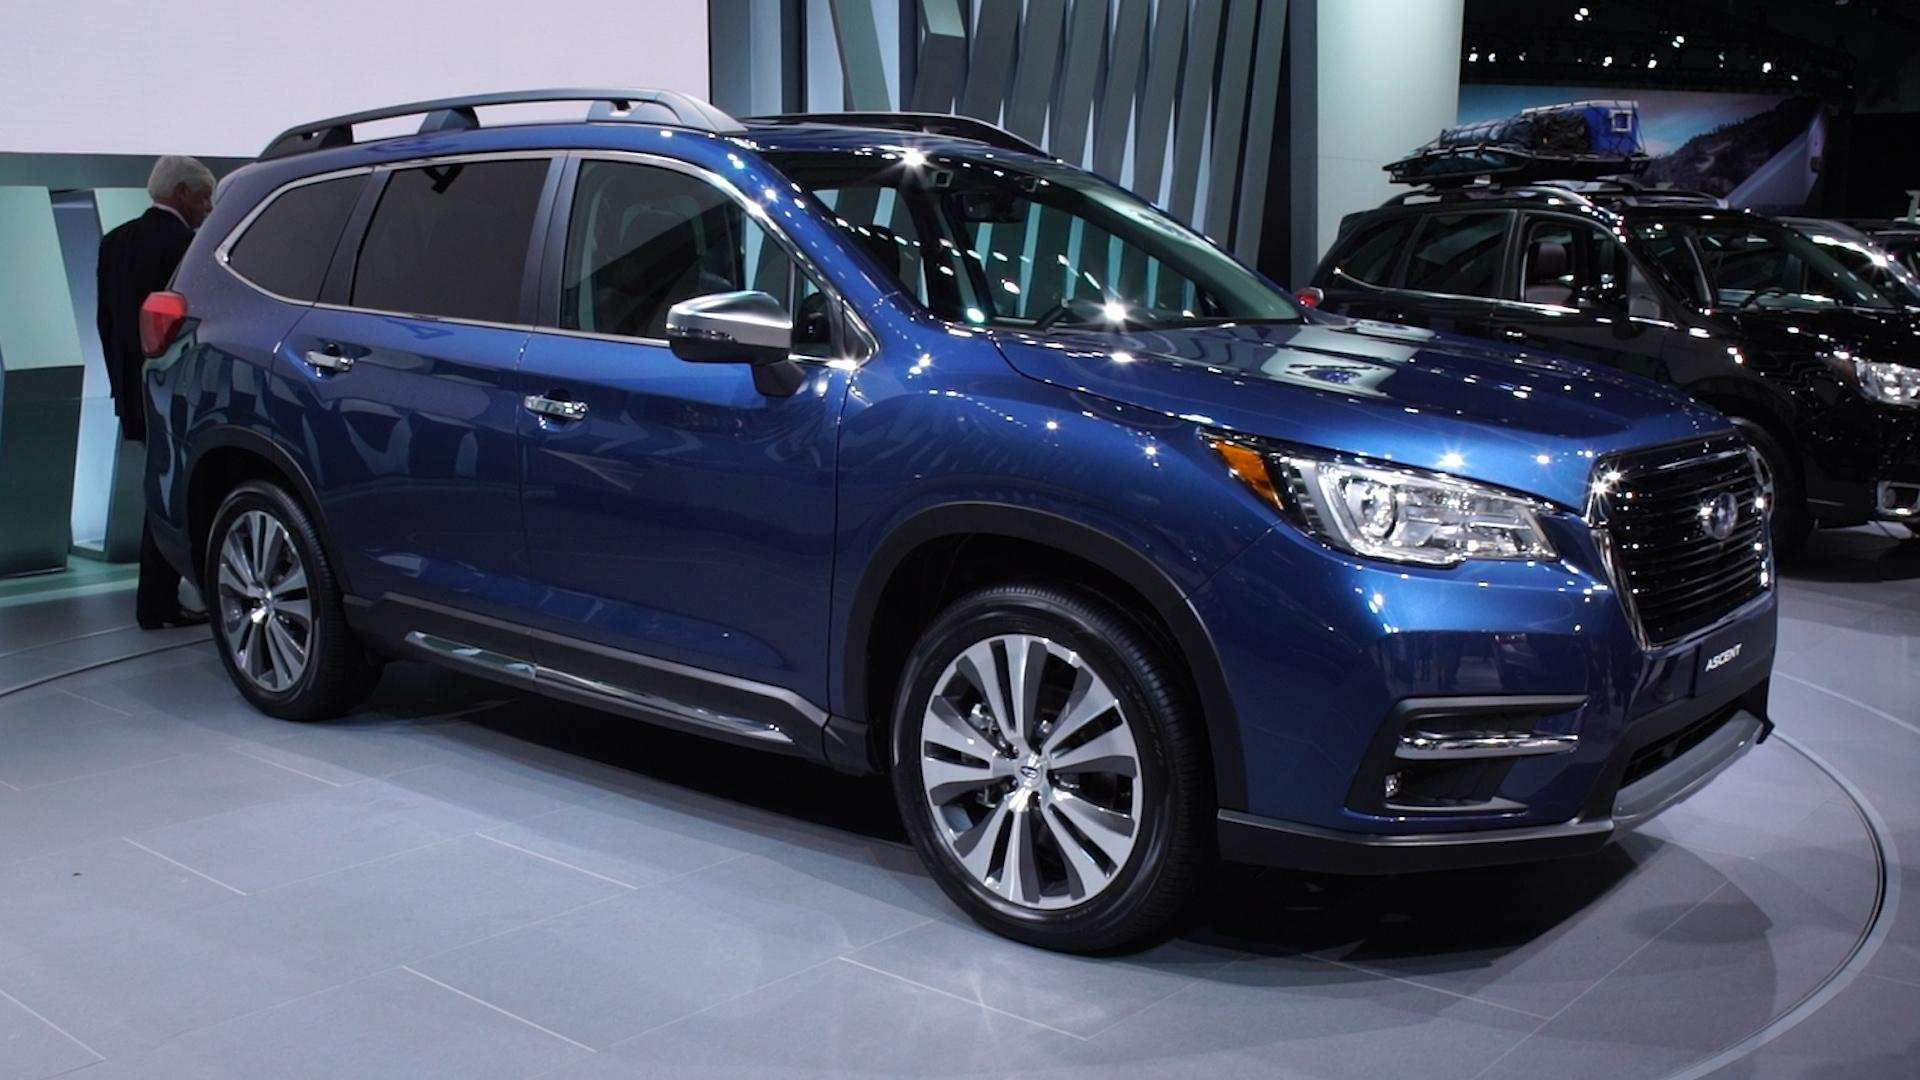 56 New 2019 Subaru Ascent Style by 2019 Subaru Ascent